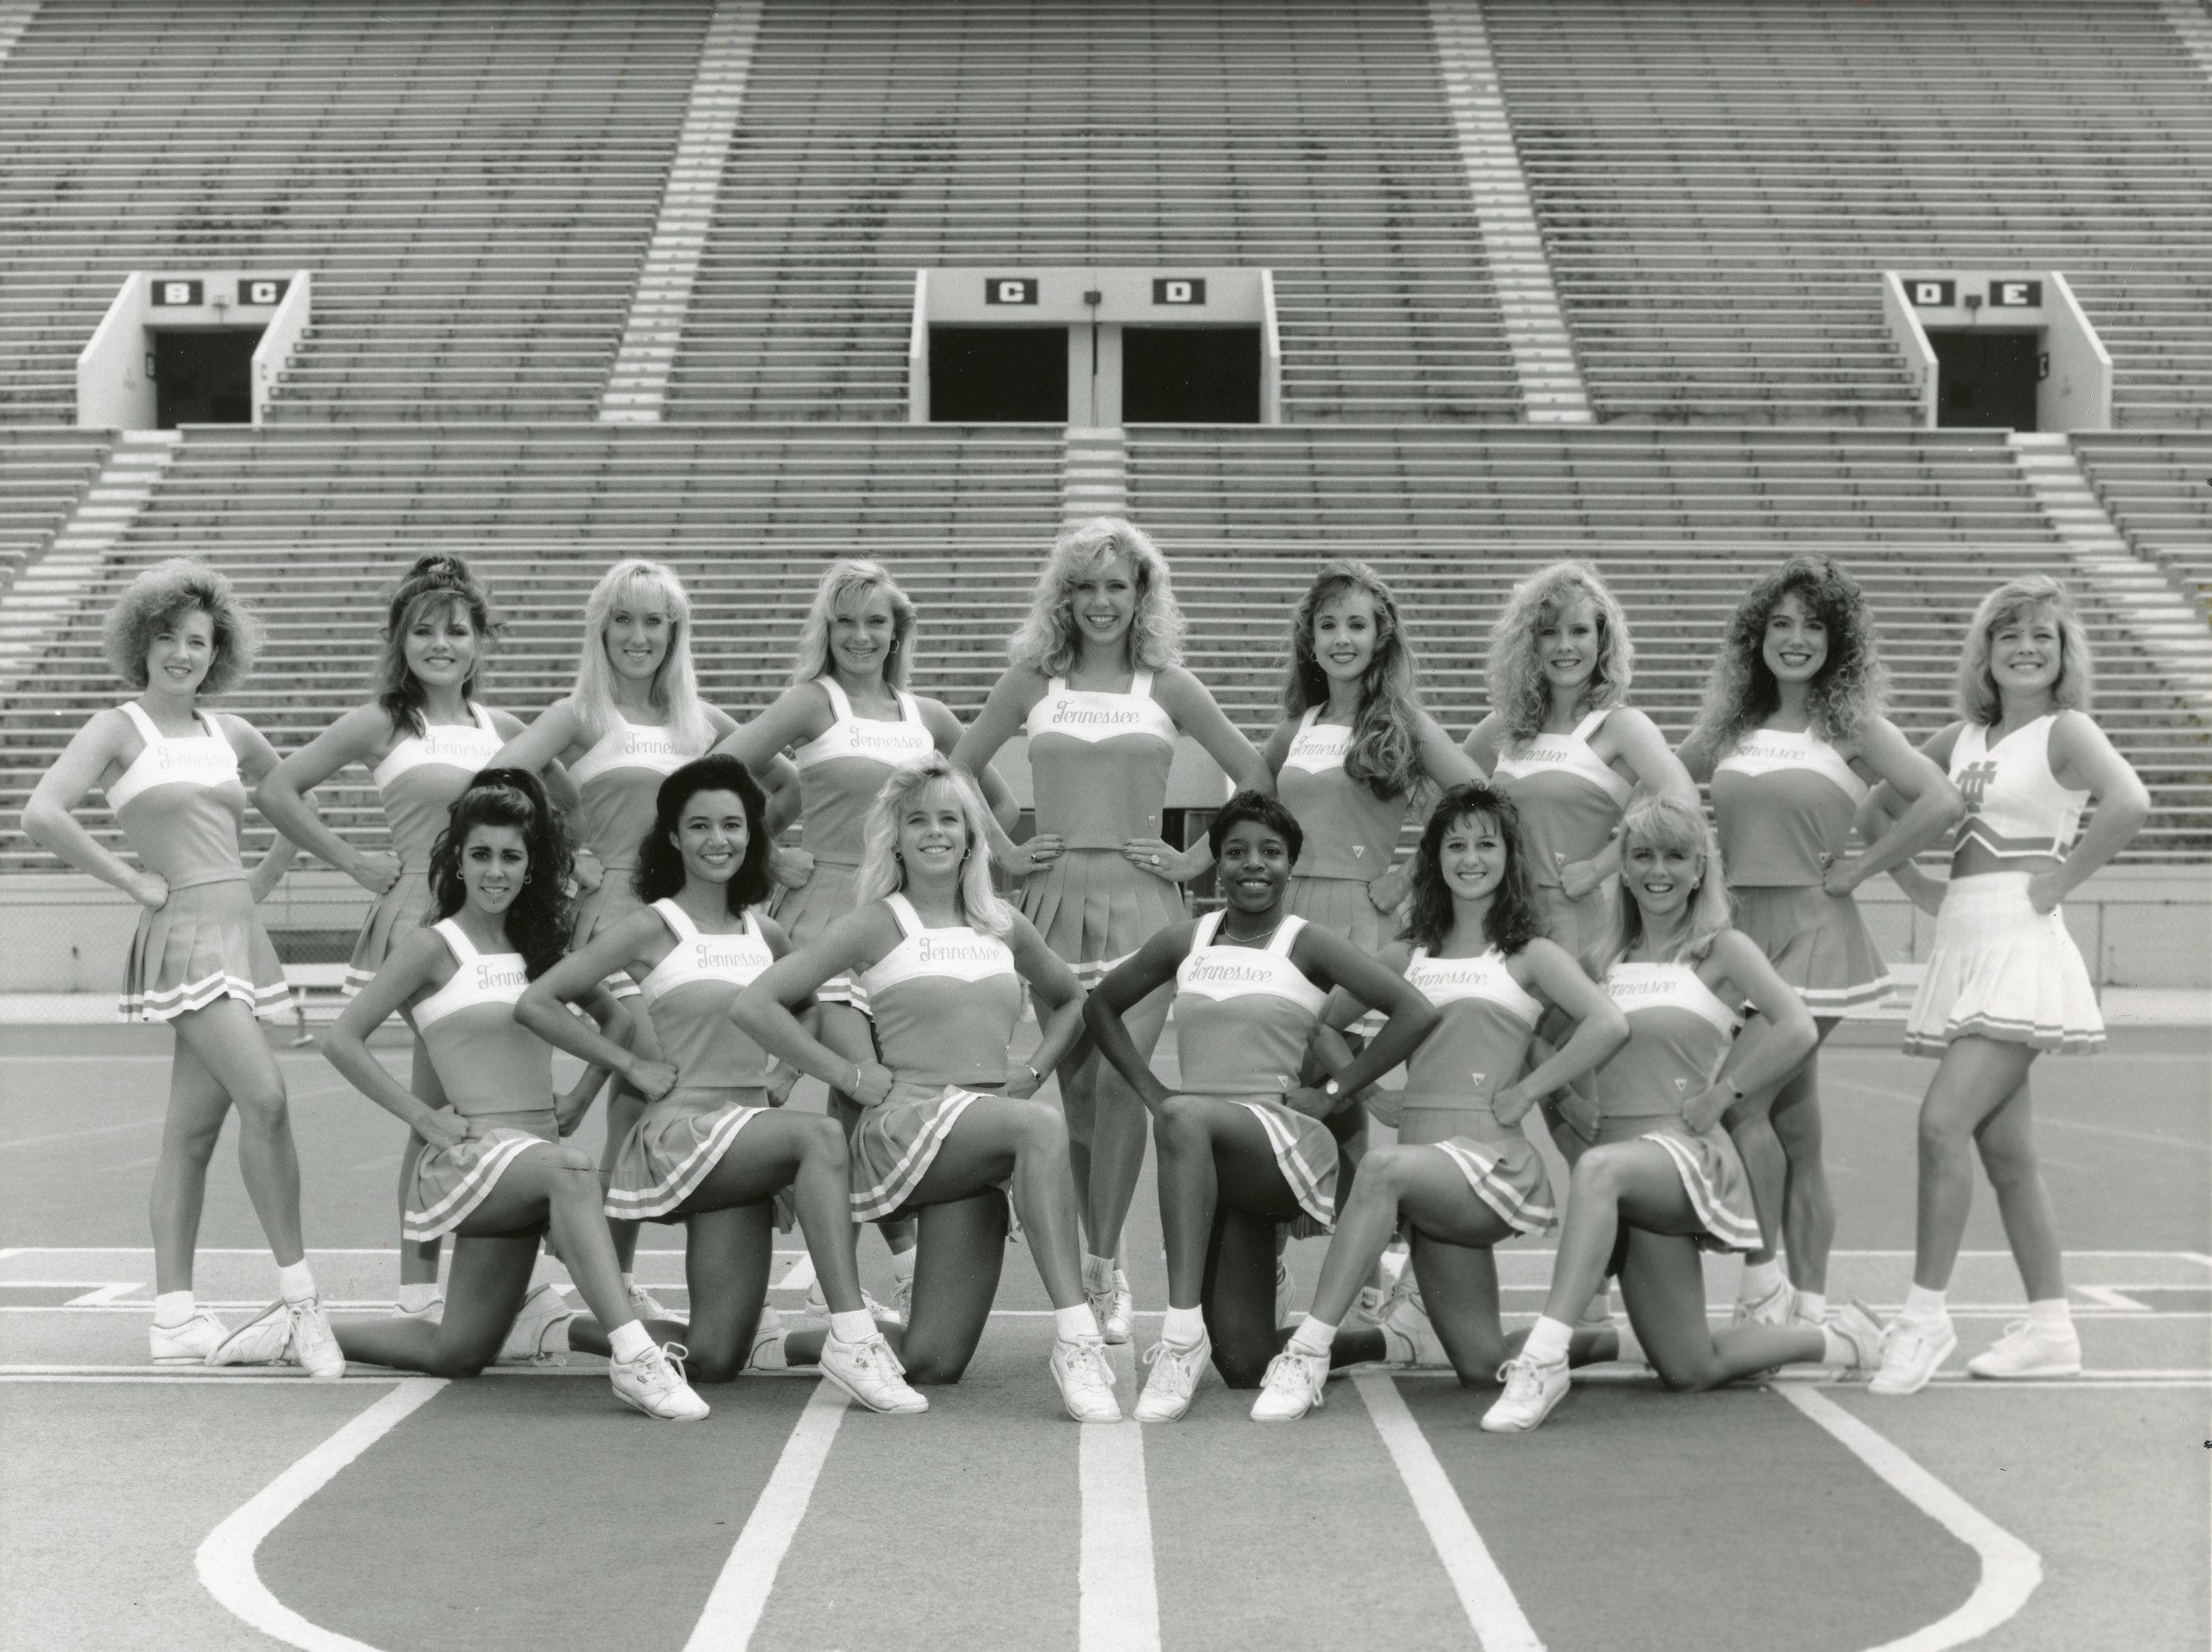 University of Tennessee spirit squad members (front) Krista Gould, Stephanie Bryant, Kristi Pollard, Gina Young, Kate Perrin, Jamie Dunbar; (back) Susan Howard, Rachael Noe, Laura Elkins, Natasha Stone, Lee Ann Nixon, Allison Clark, Stephanie Tipton, Kimberly Roberts and Emily Regal. September, 1991.